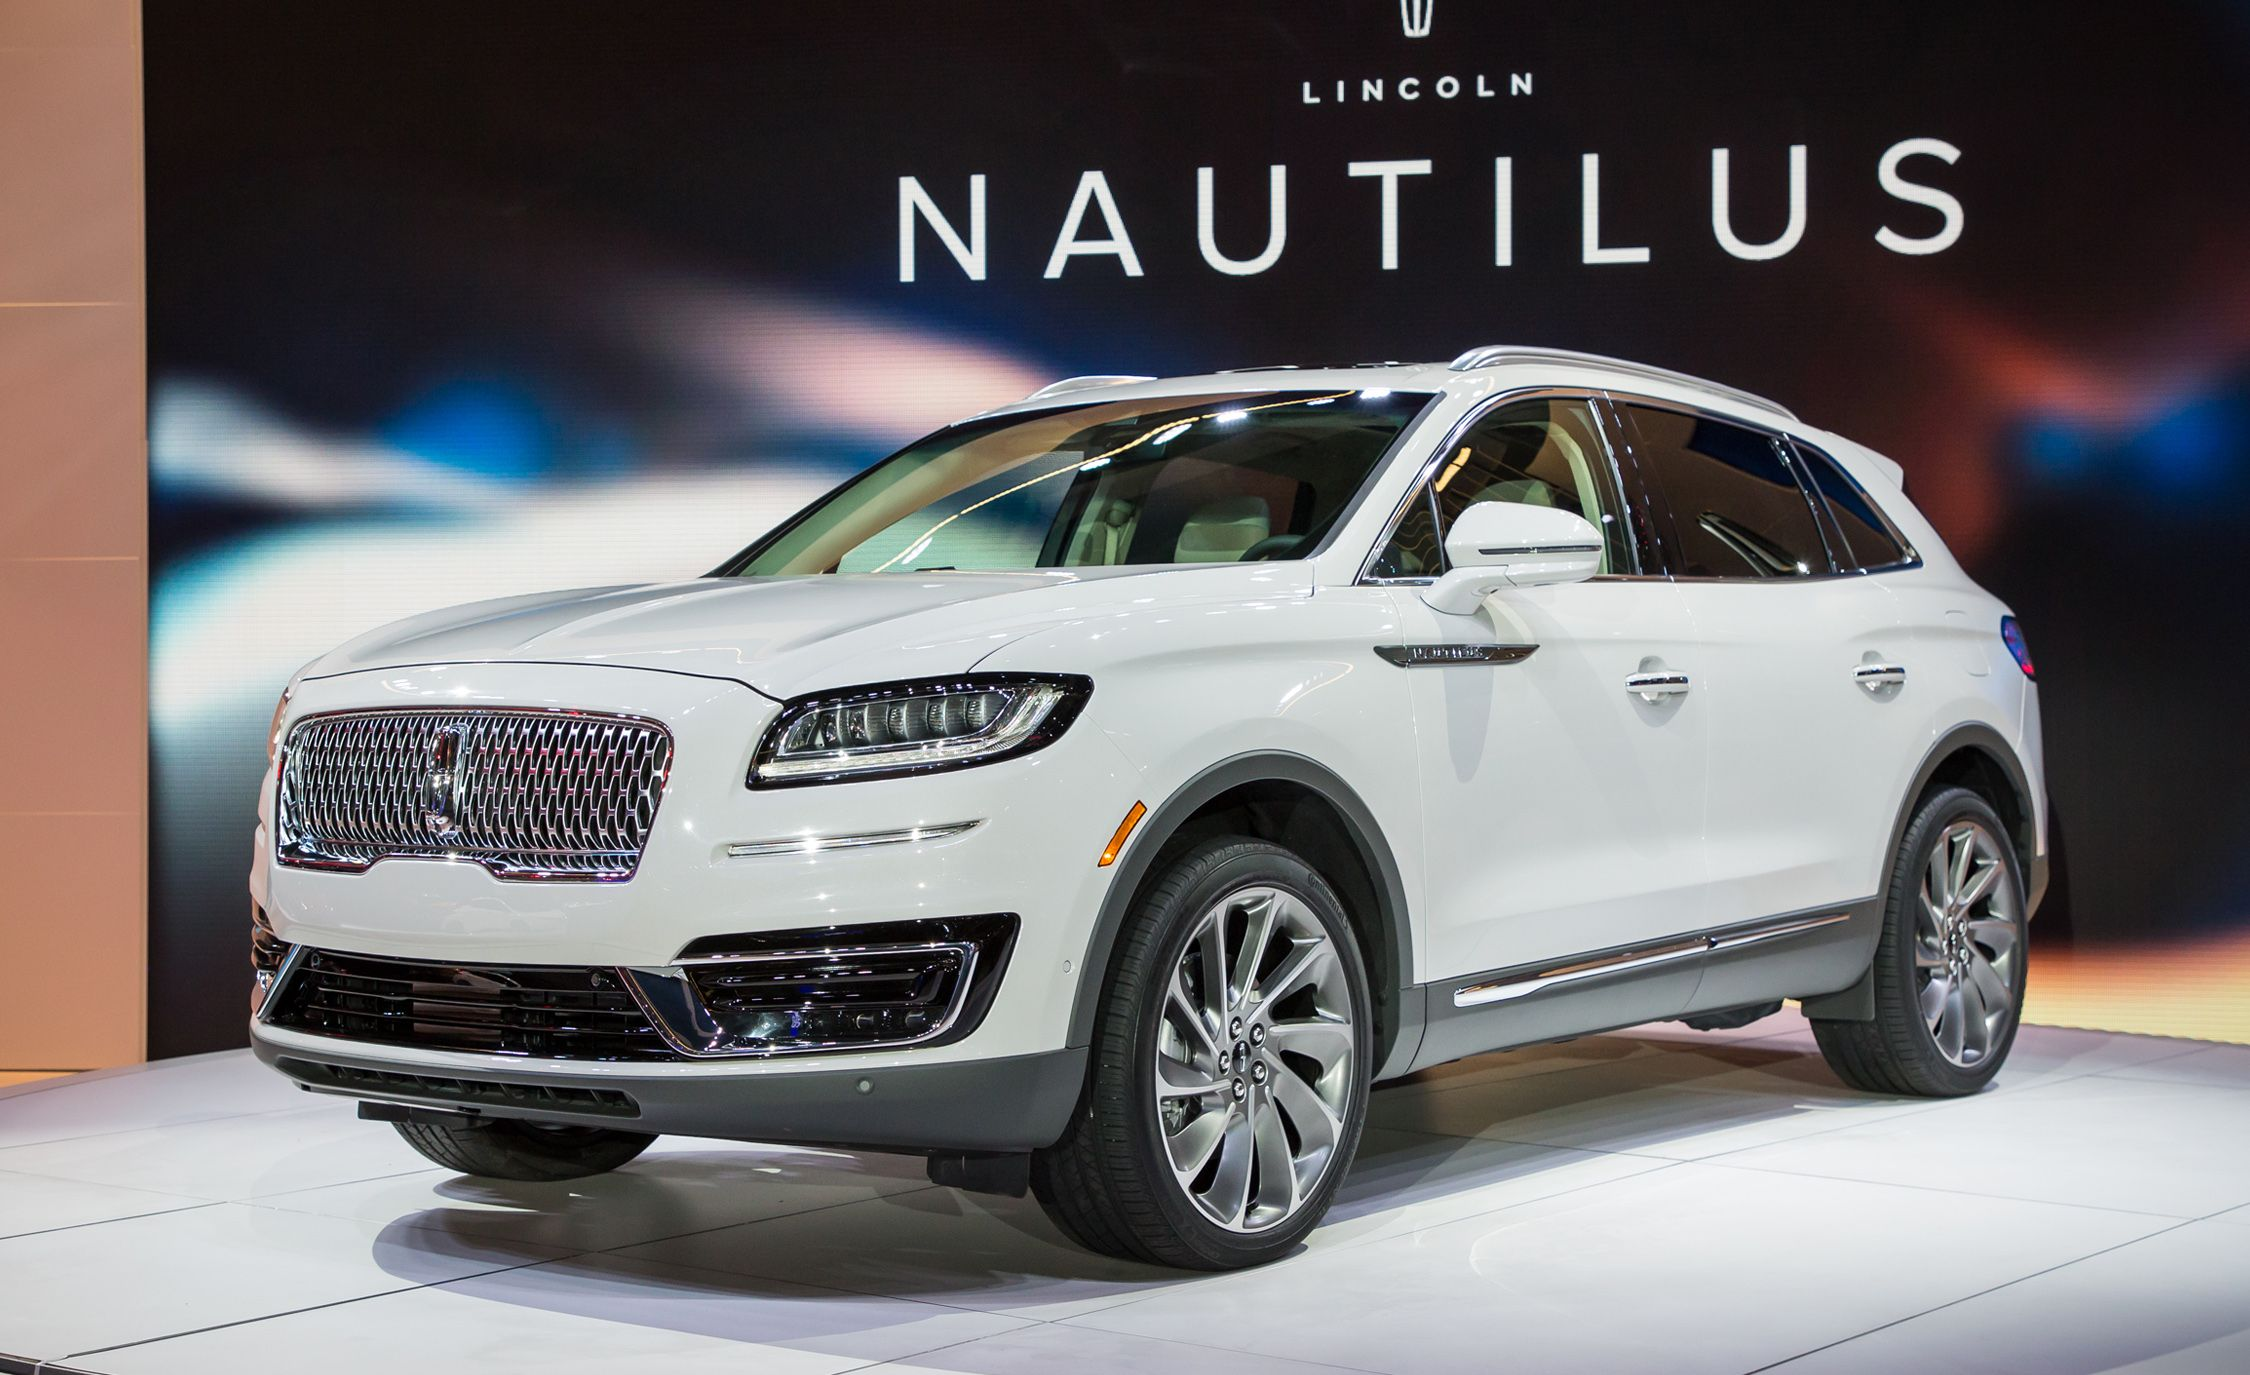 Lincoln Mkx Suv >> 2019 Lincoln Nautilus Suv Replaces The Mkx News Car And Driver